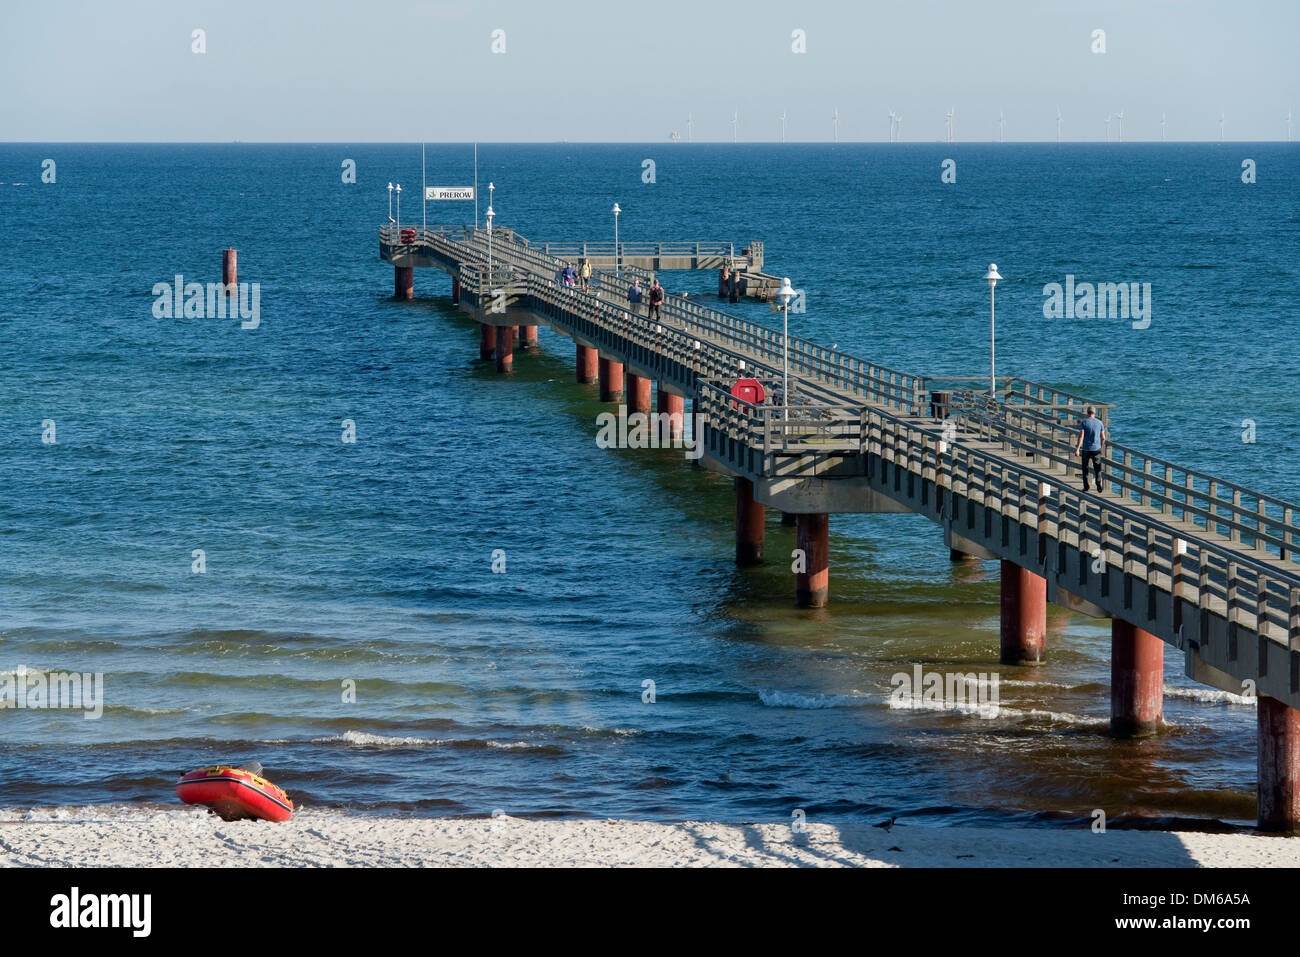 Baltic Sea and pier, Prerow, Mecklenburg-Vorpommern, Germany - Stock Image